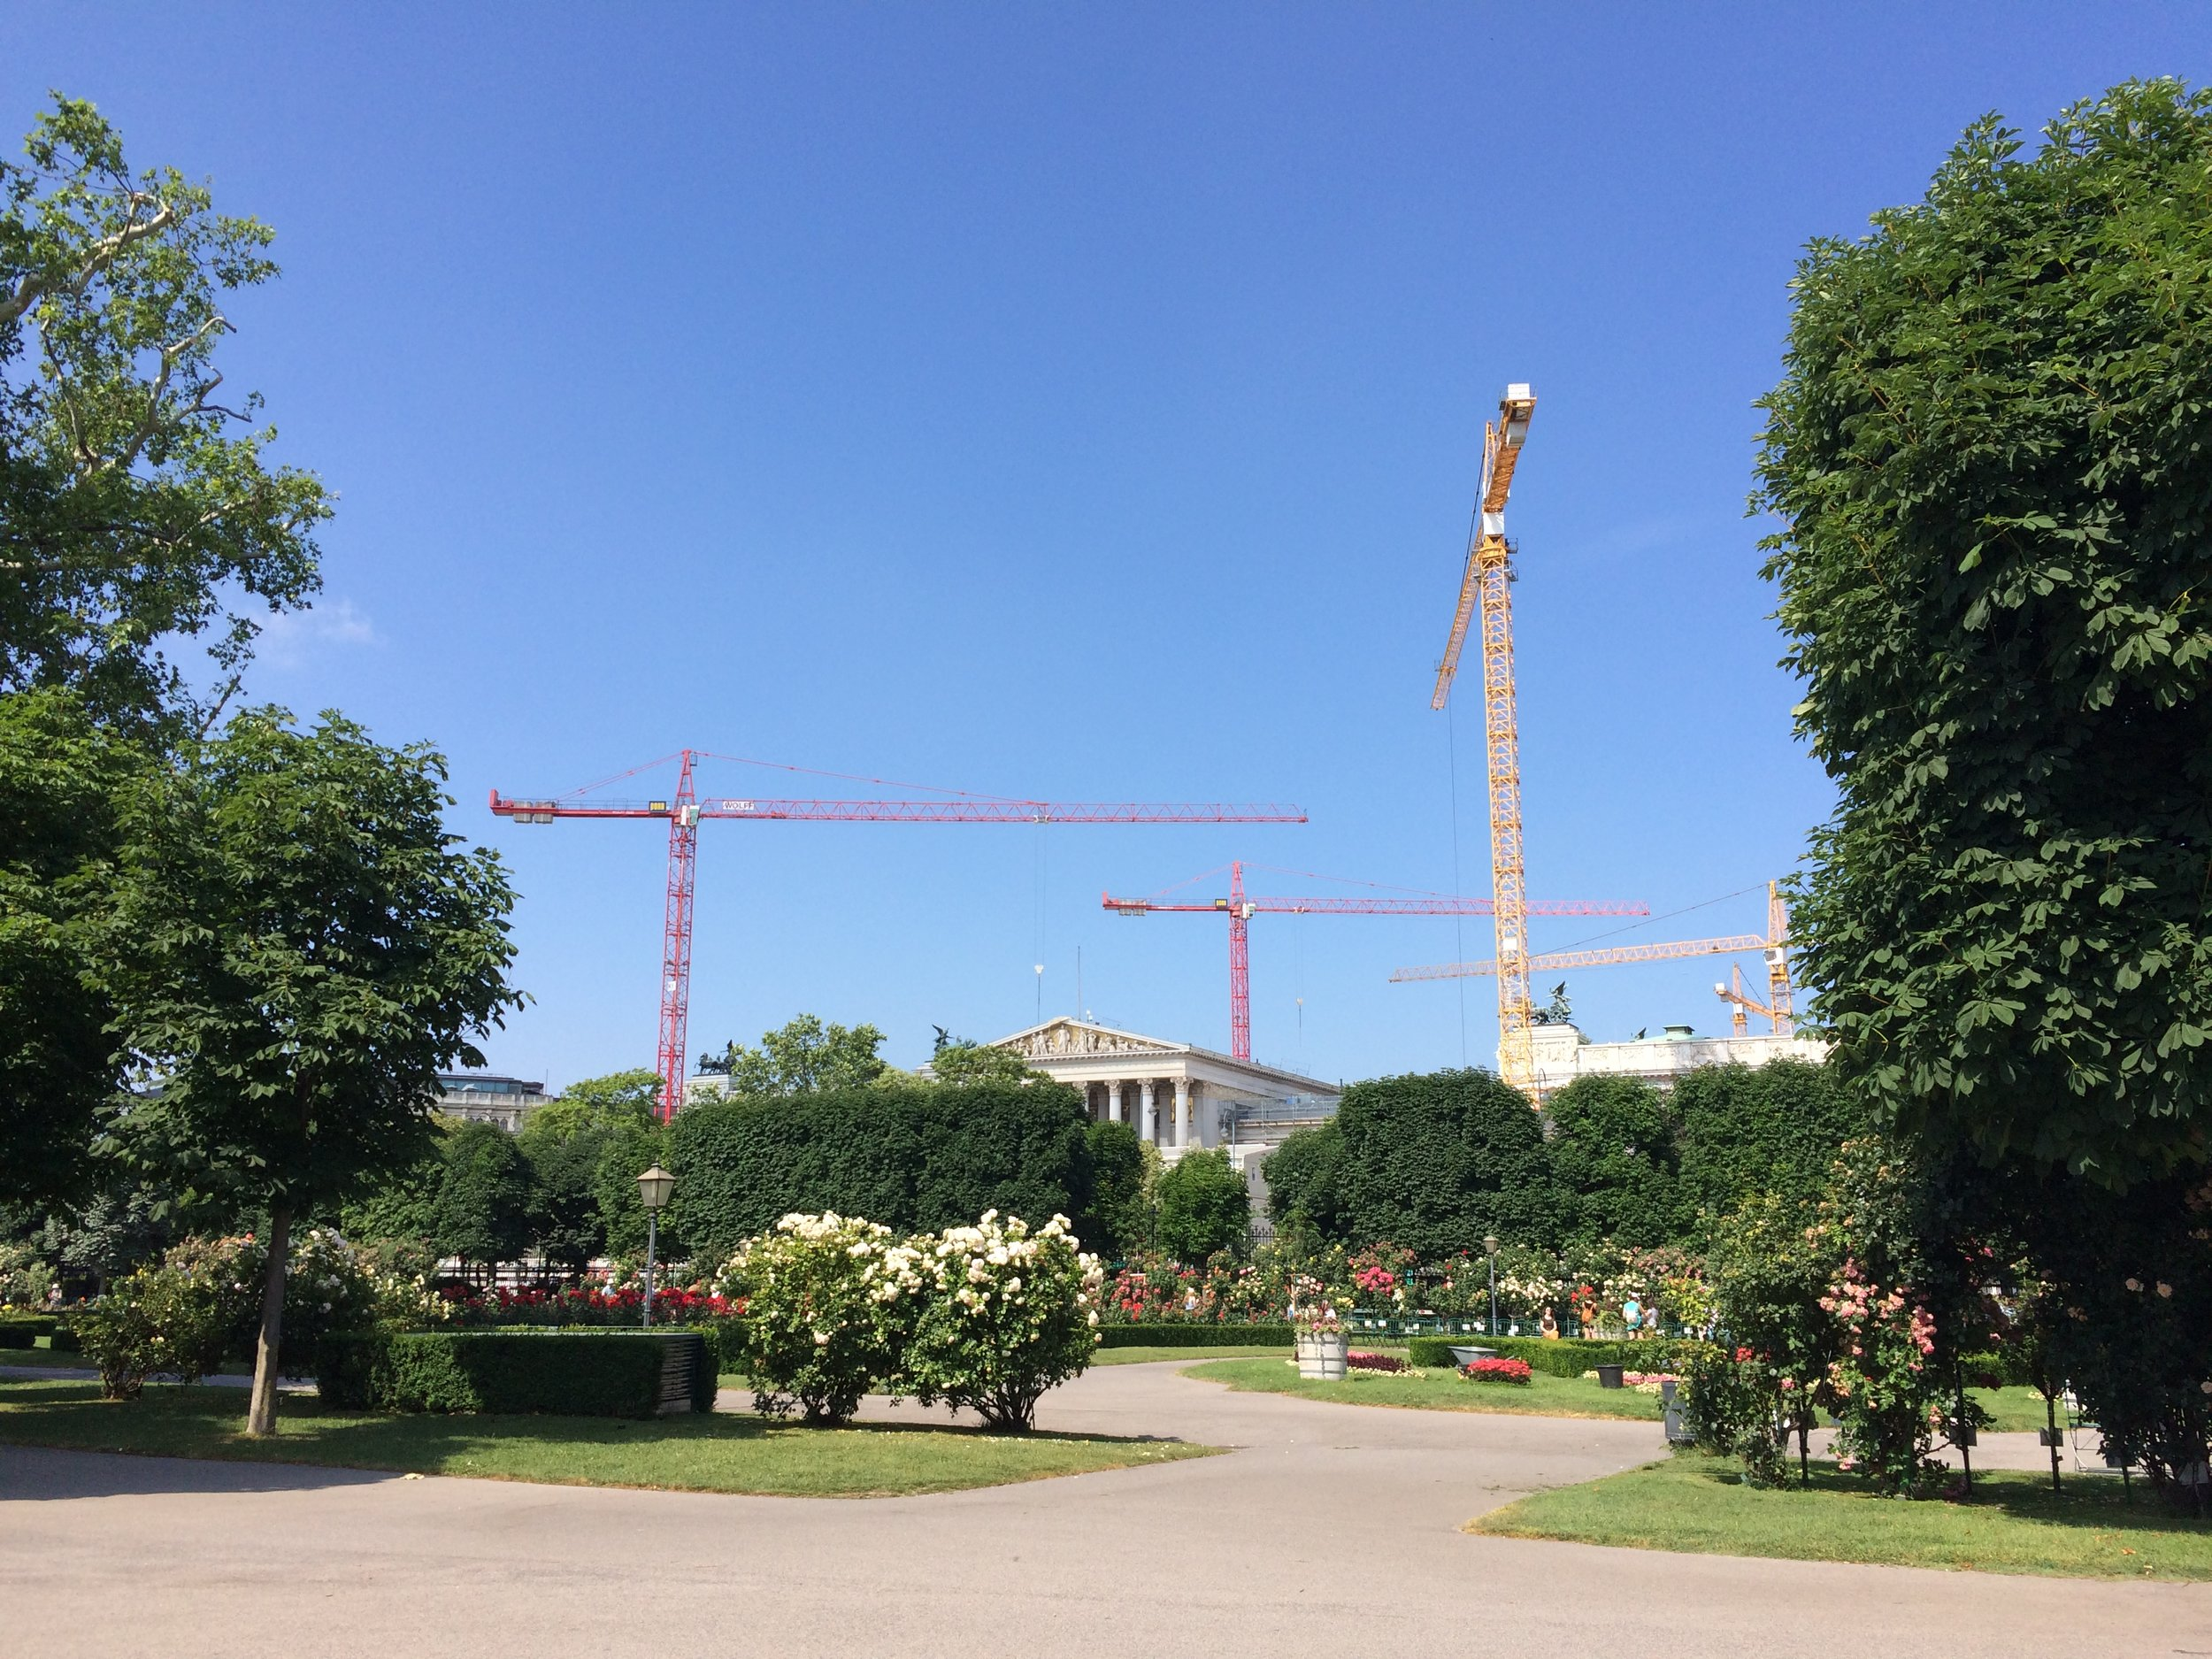 Volksgarten again. Lots of construction to renovate the parliament.